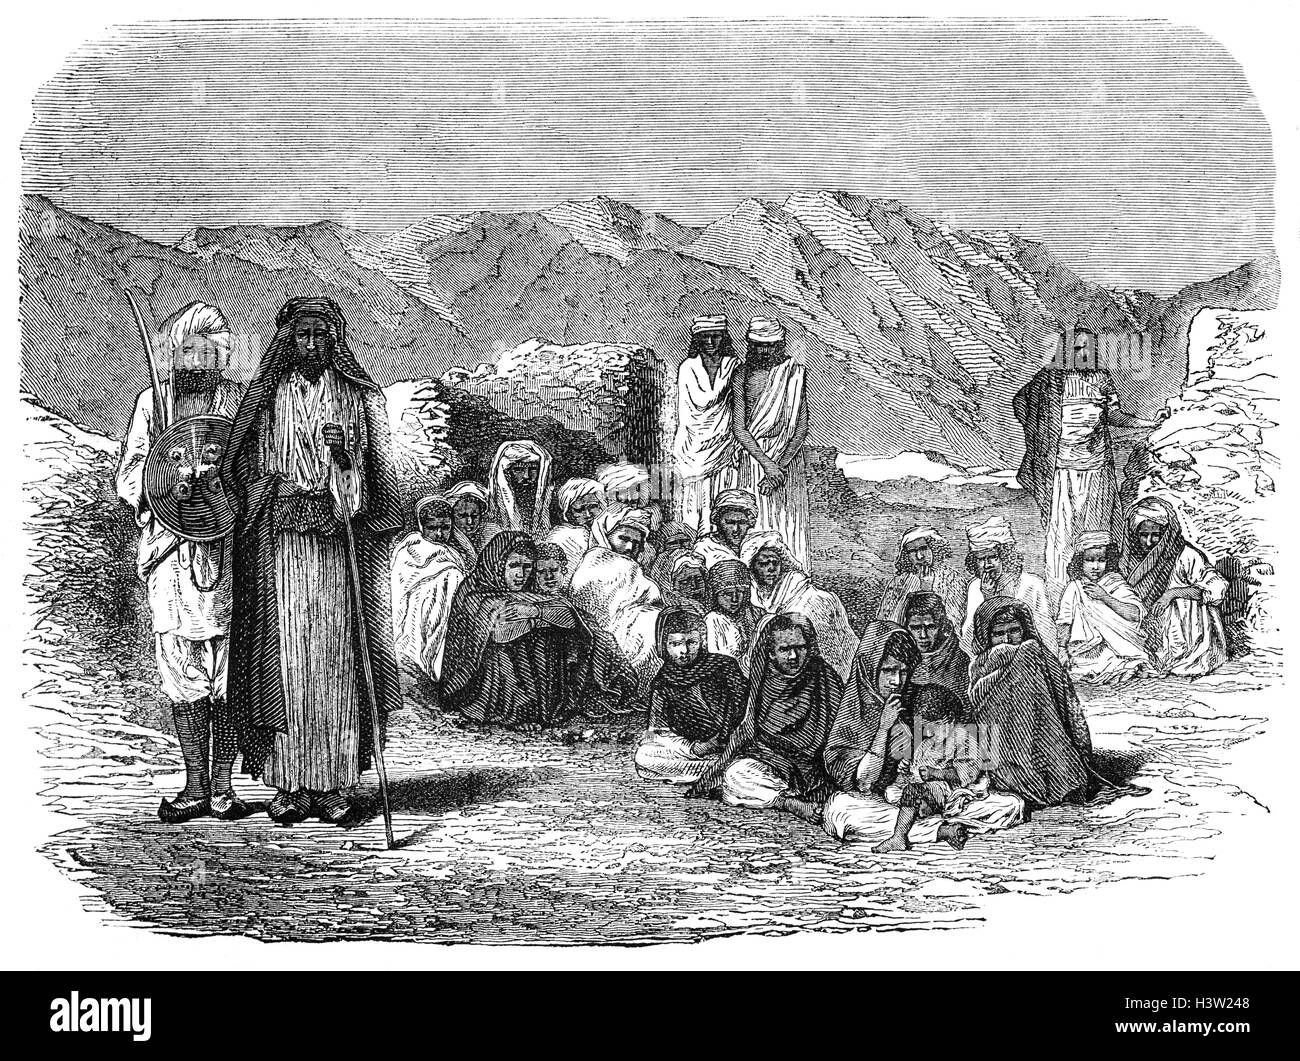 Afghan mountaineers in 1872, about the time that Amir Shir Ali took the throne, a move that created friction with - Stock Image